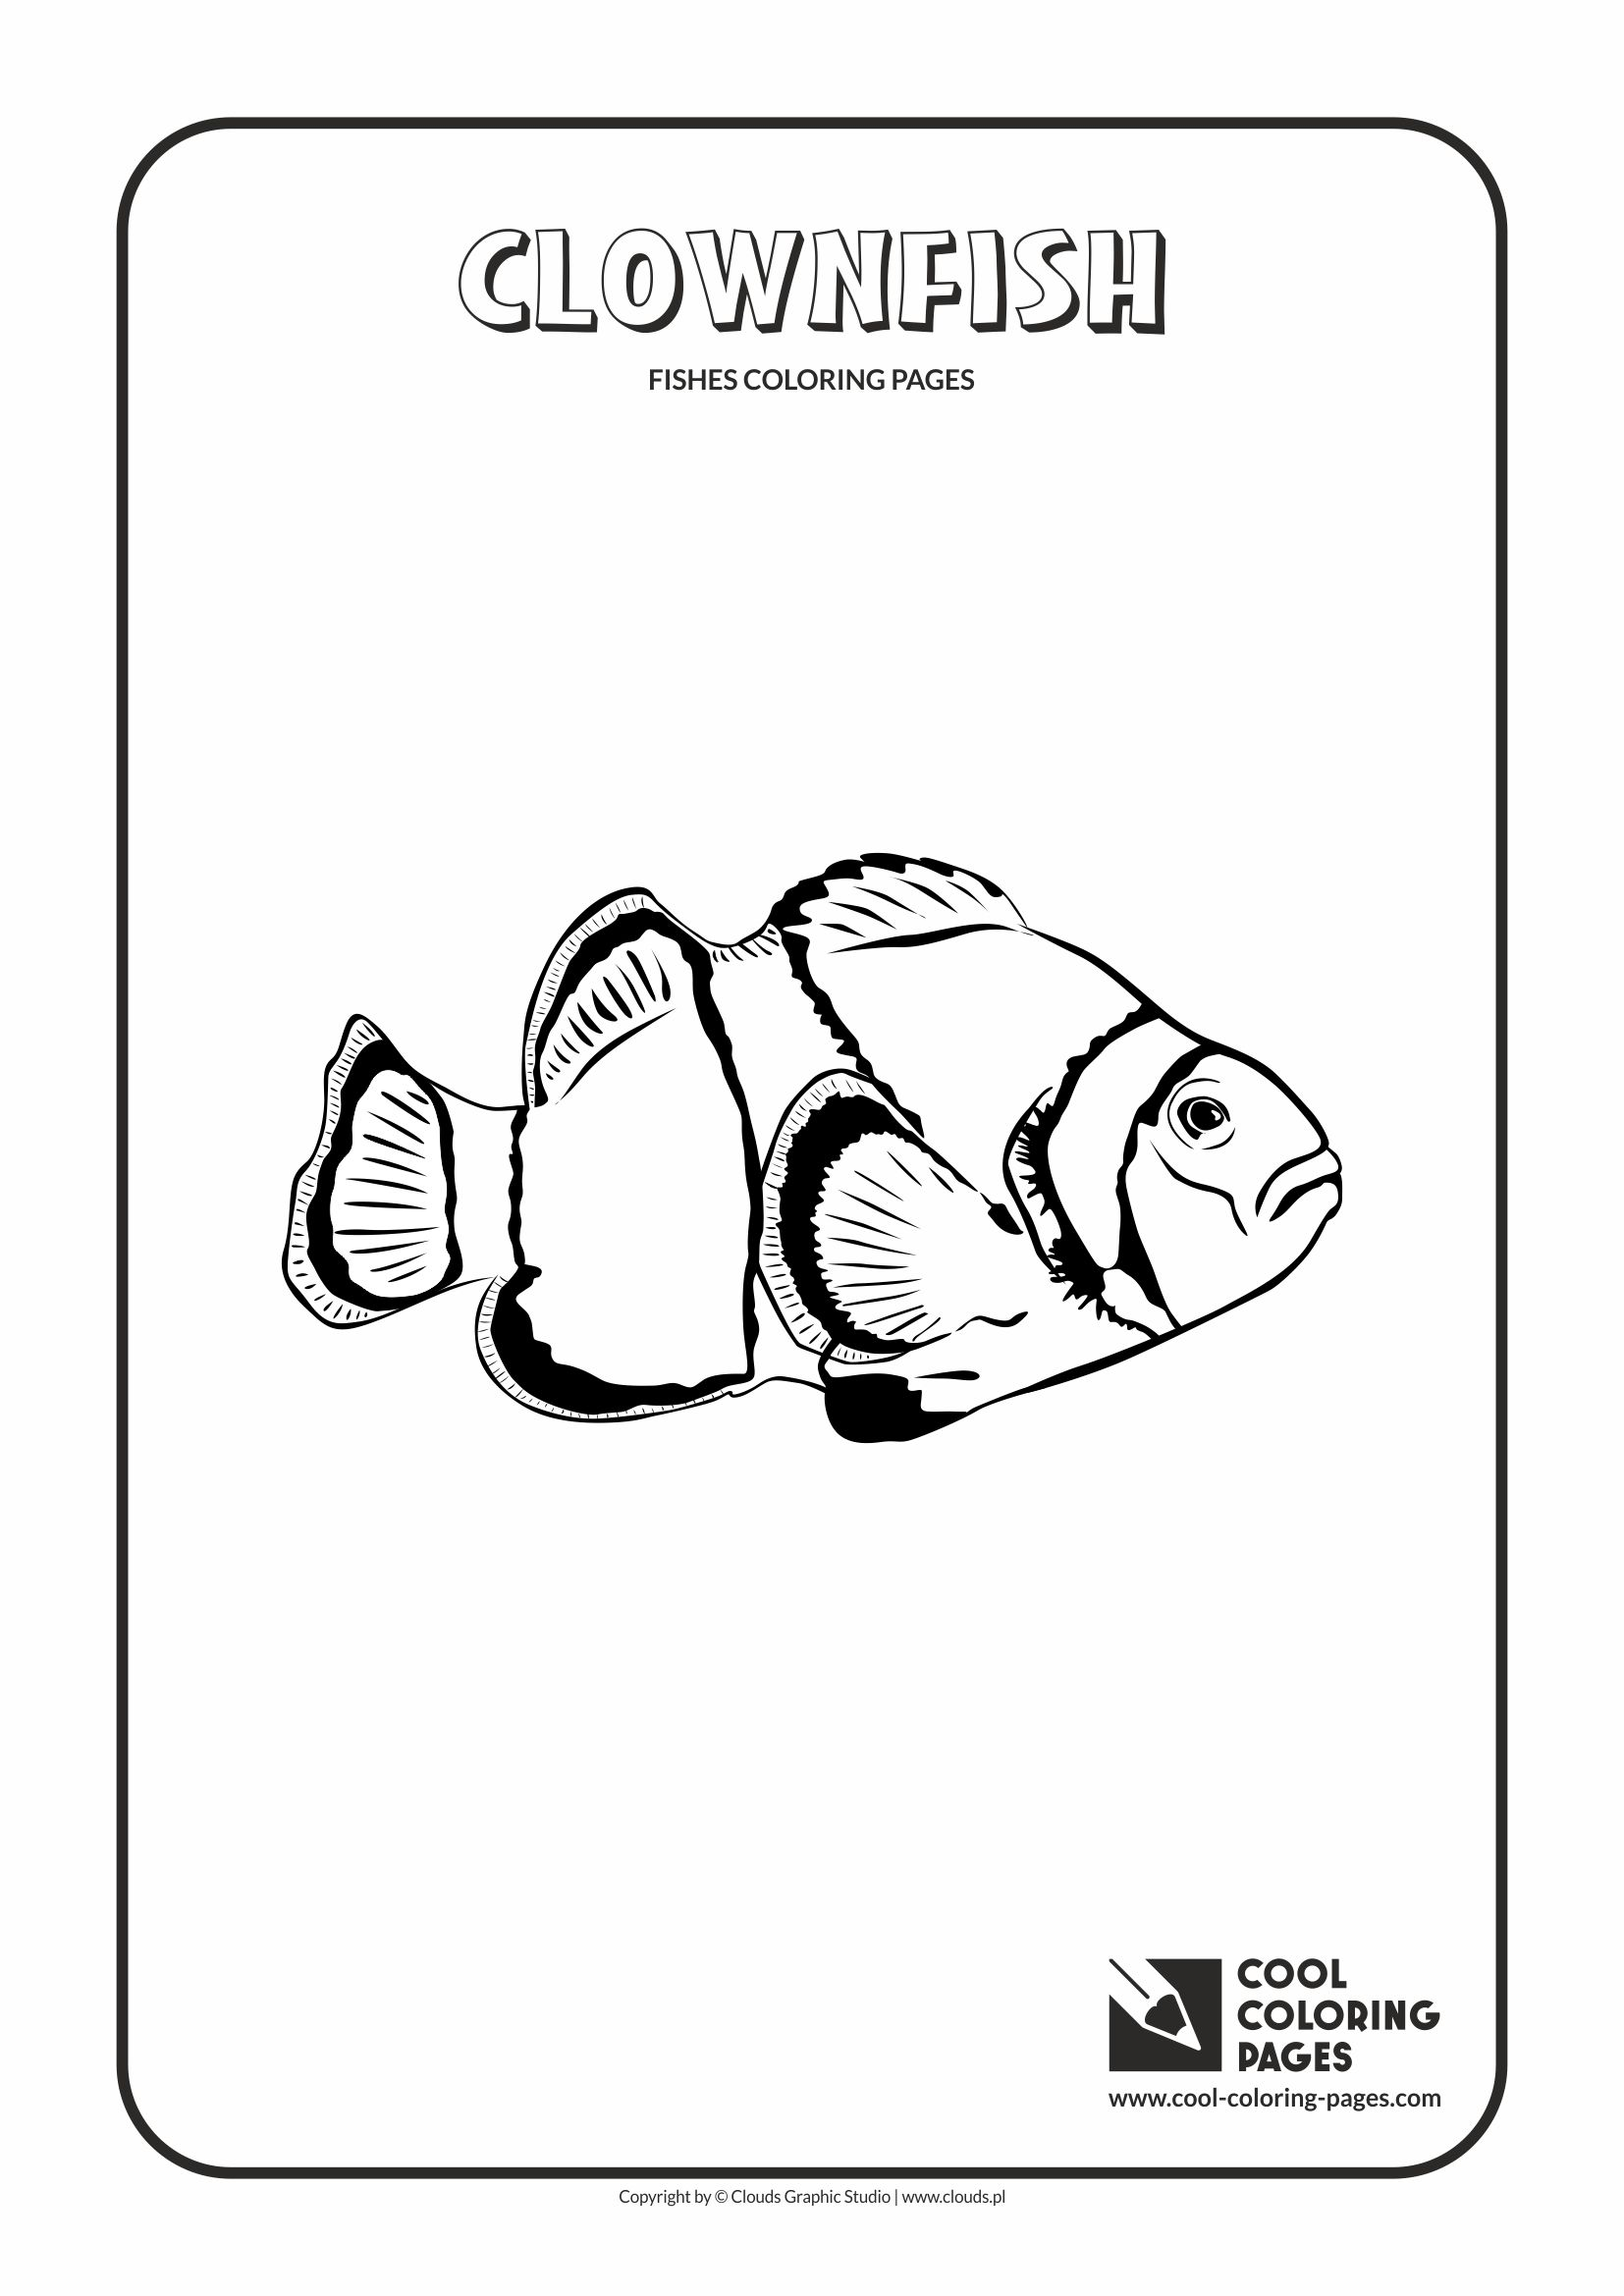 Cool Coloring Pages - Animals / Clownfish / Coloring page with clownfish